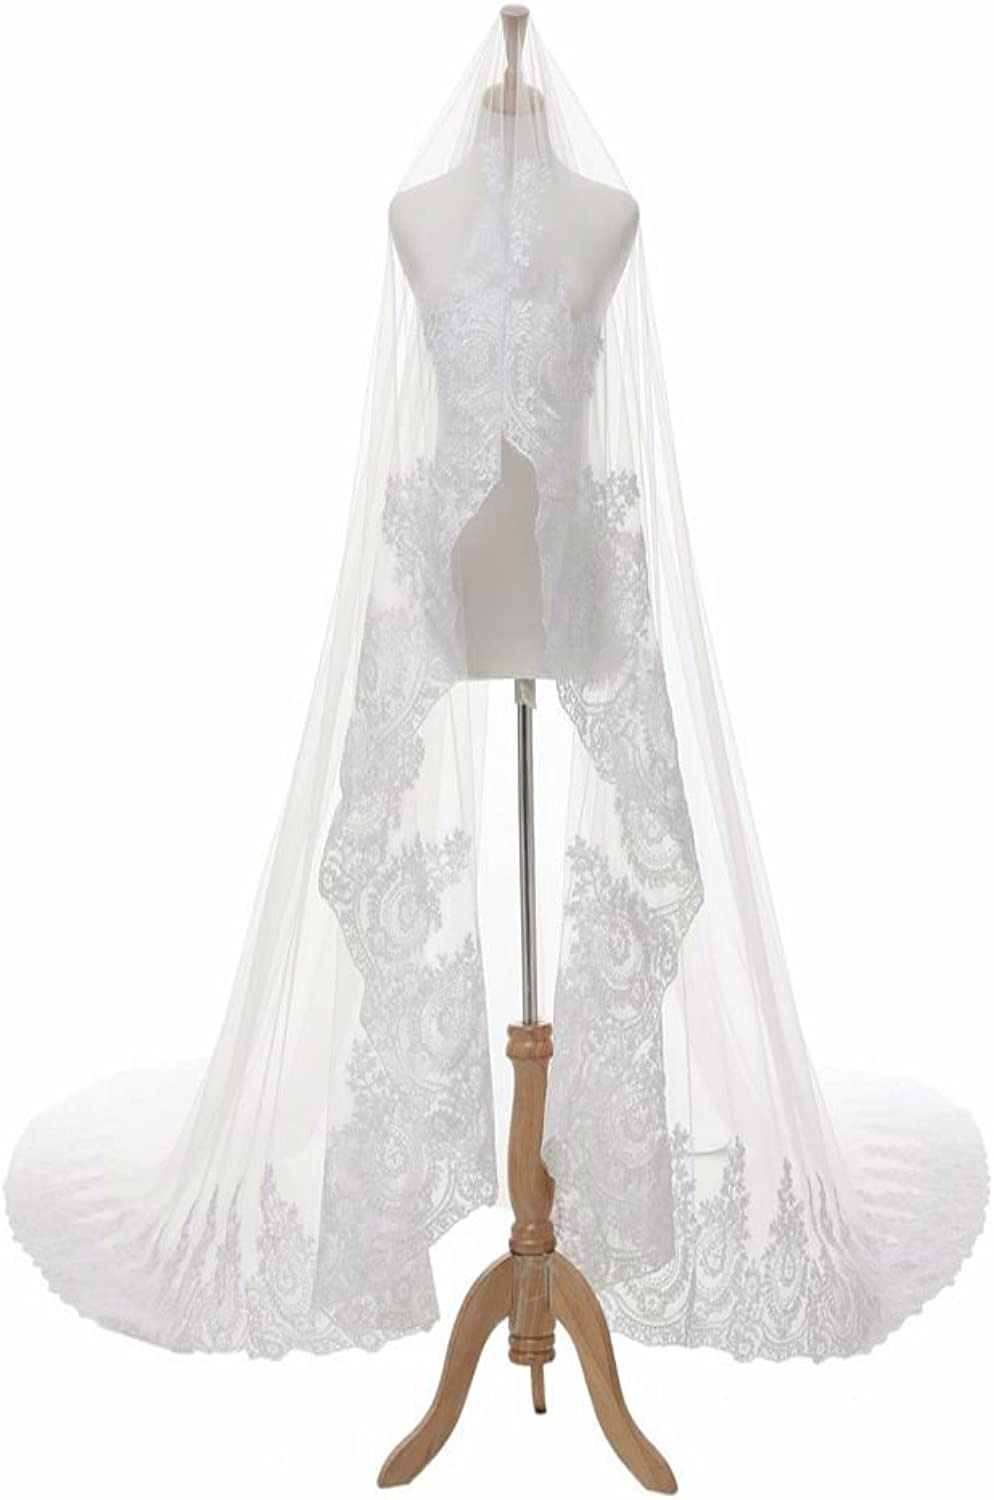 QY Bride 2m Lace Cathedral Wedding Veils Bridal Headpiece